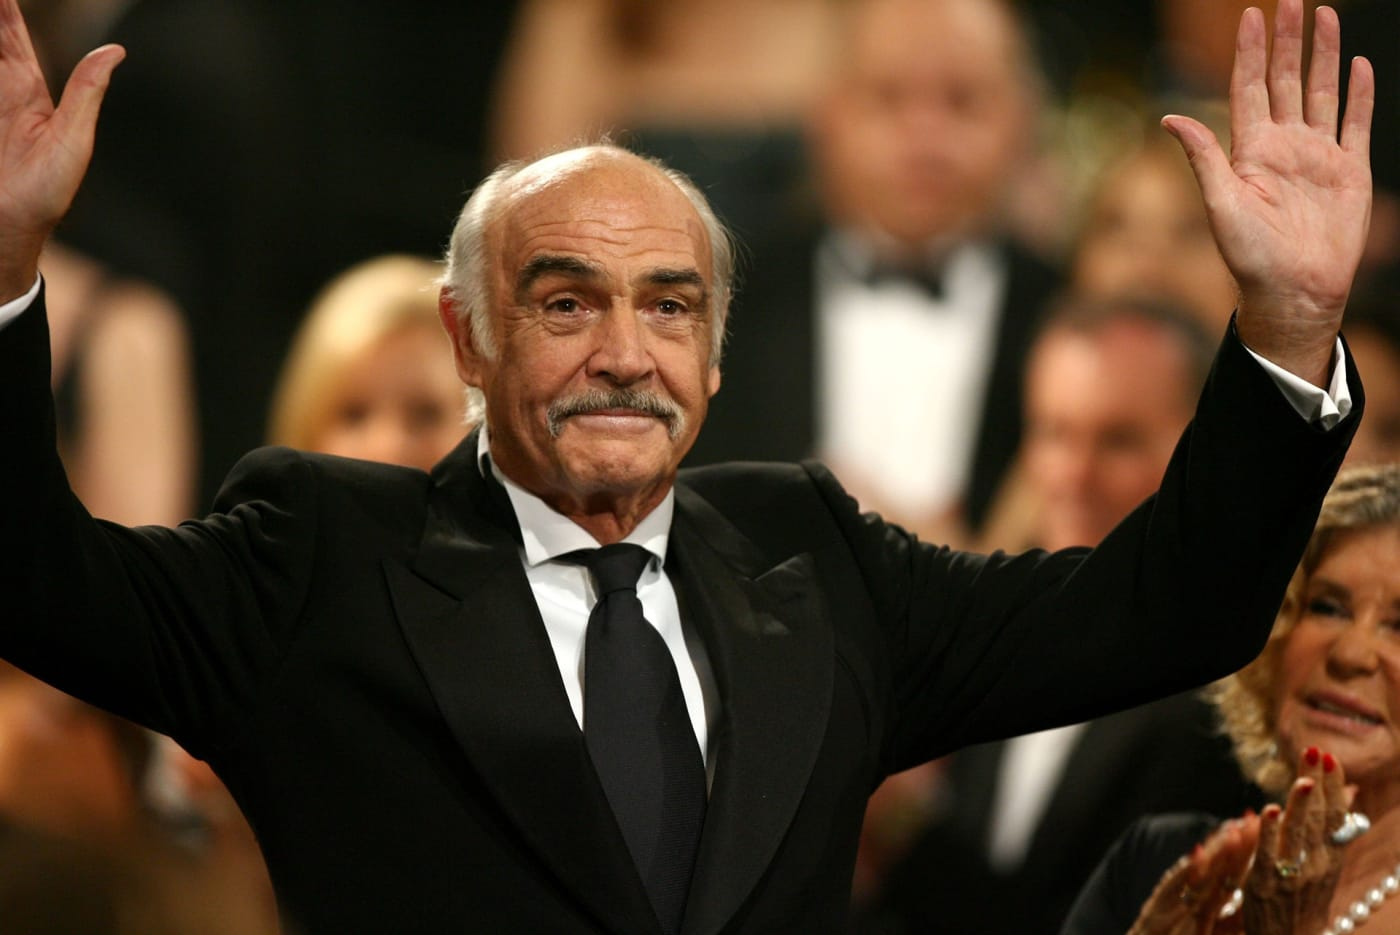 Sean Connery waves to the audience during the 34th AFI Life Achievement Award tribute